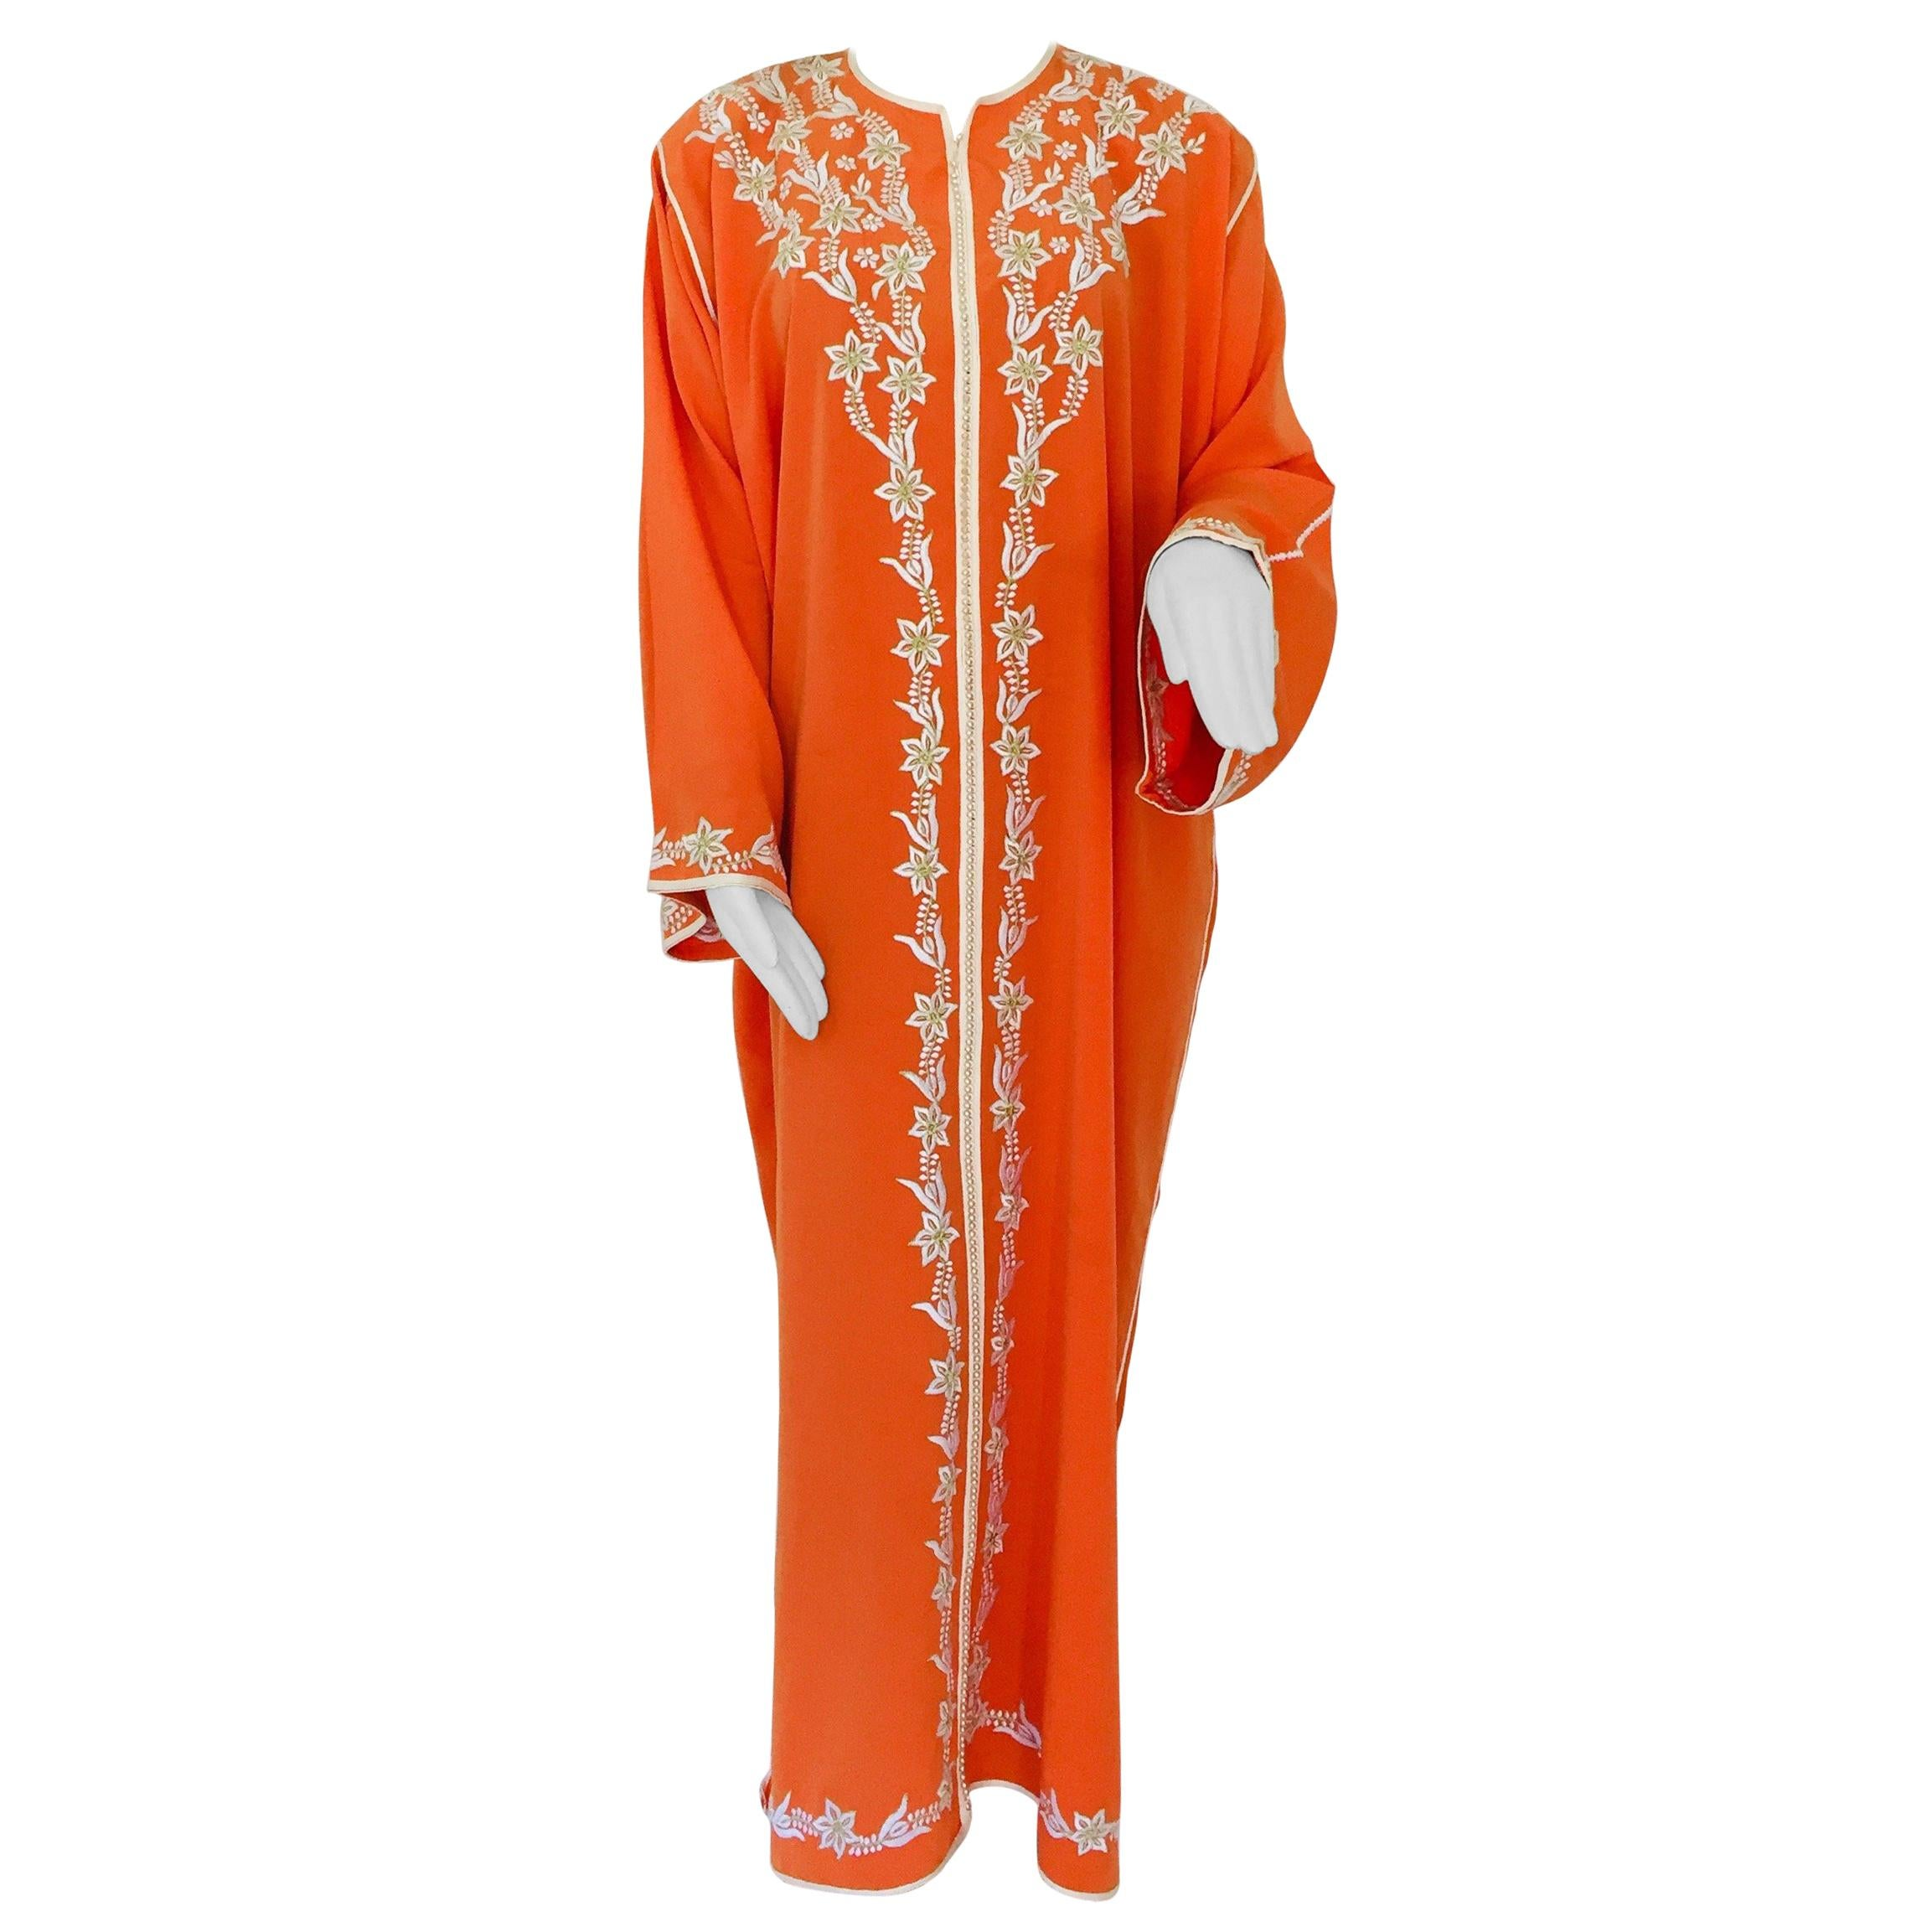 Moroccan Orange Kaftan Maxi Dress Caftan